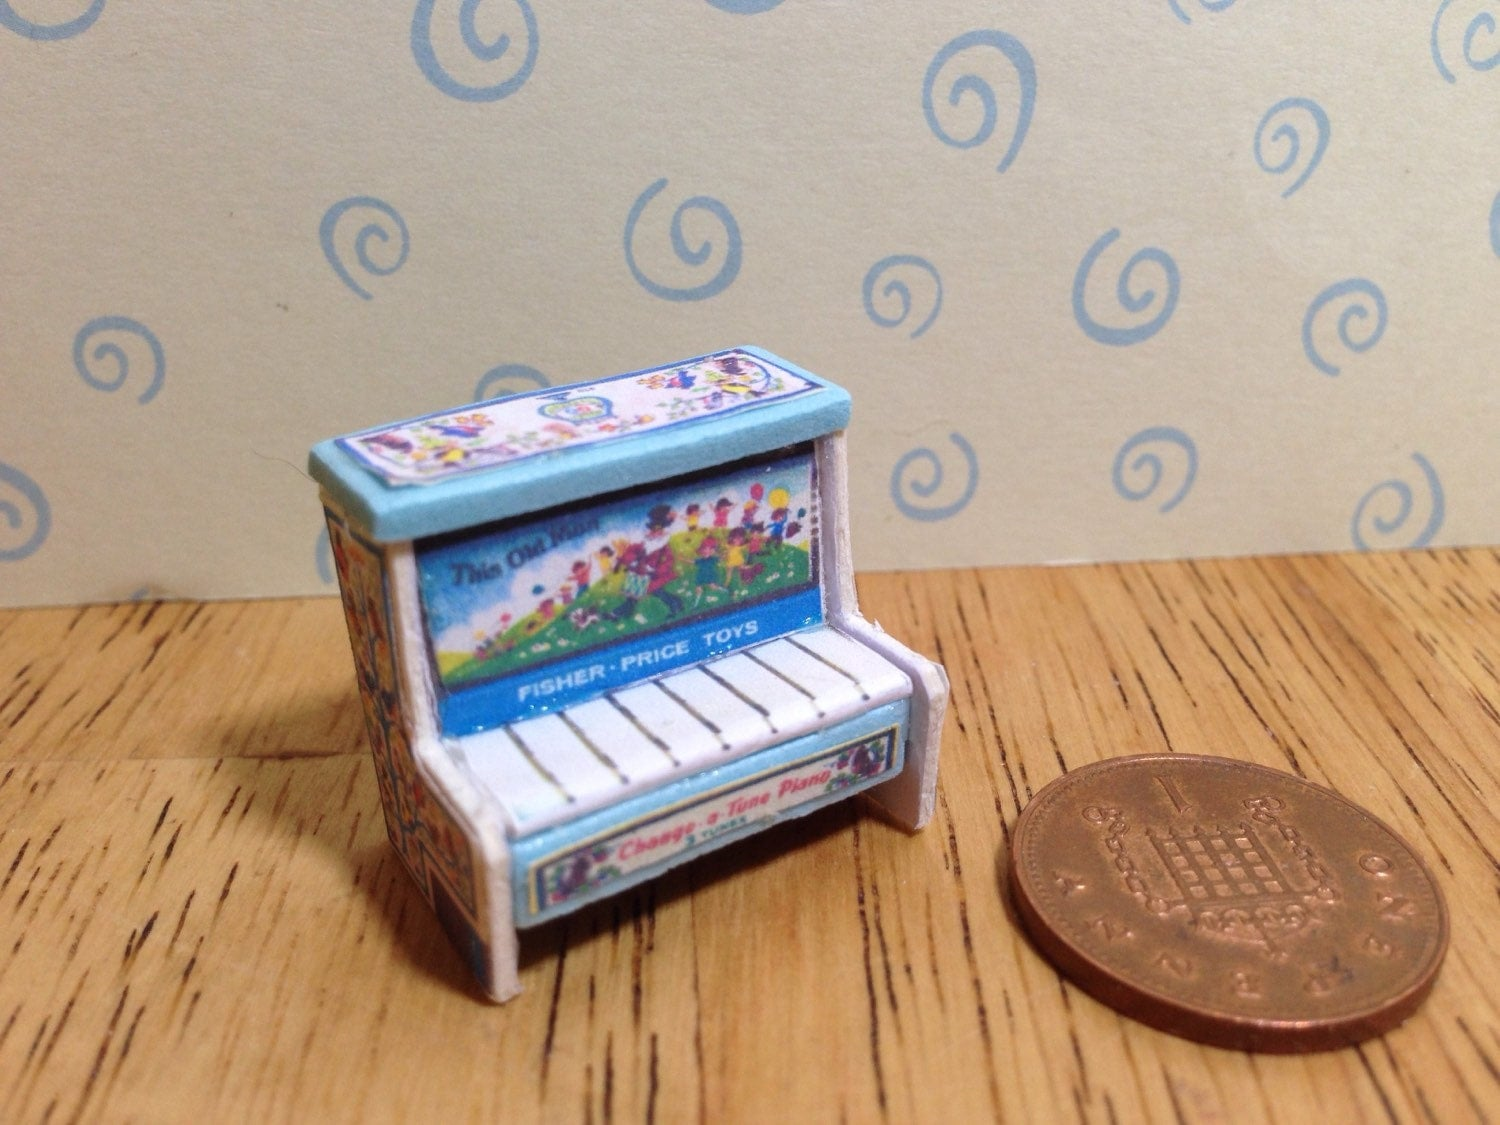 Hand made Dolls house Miniature replica vintage fisher price change a tune piano 112 scale